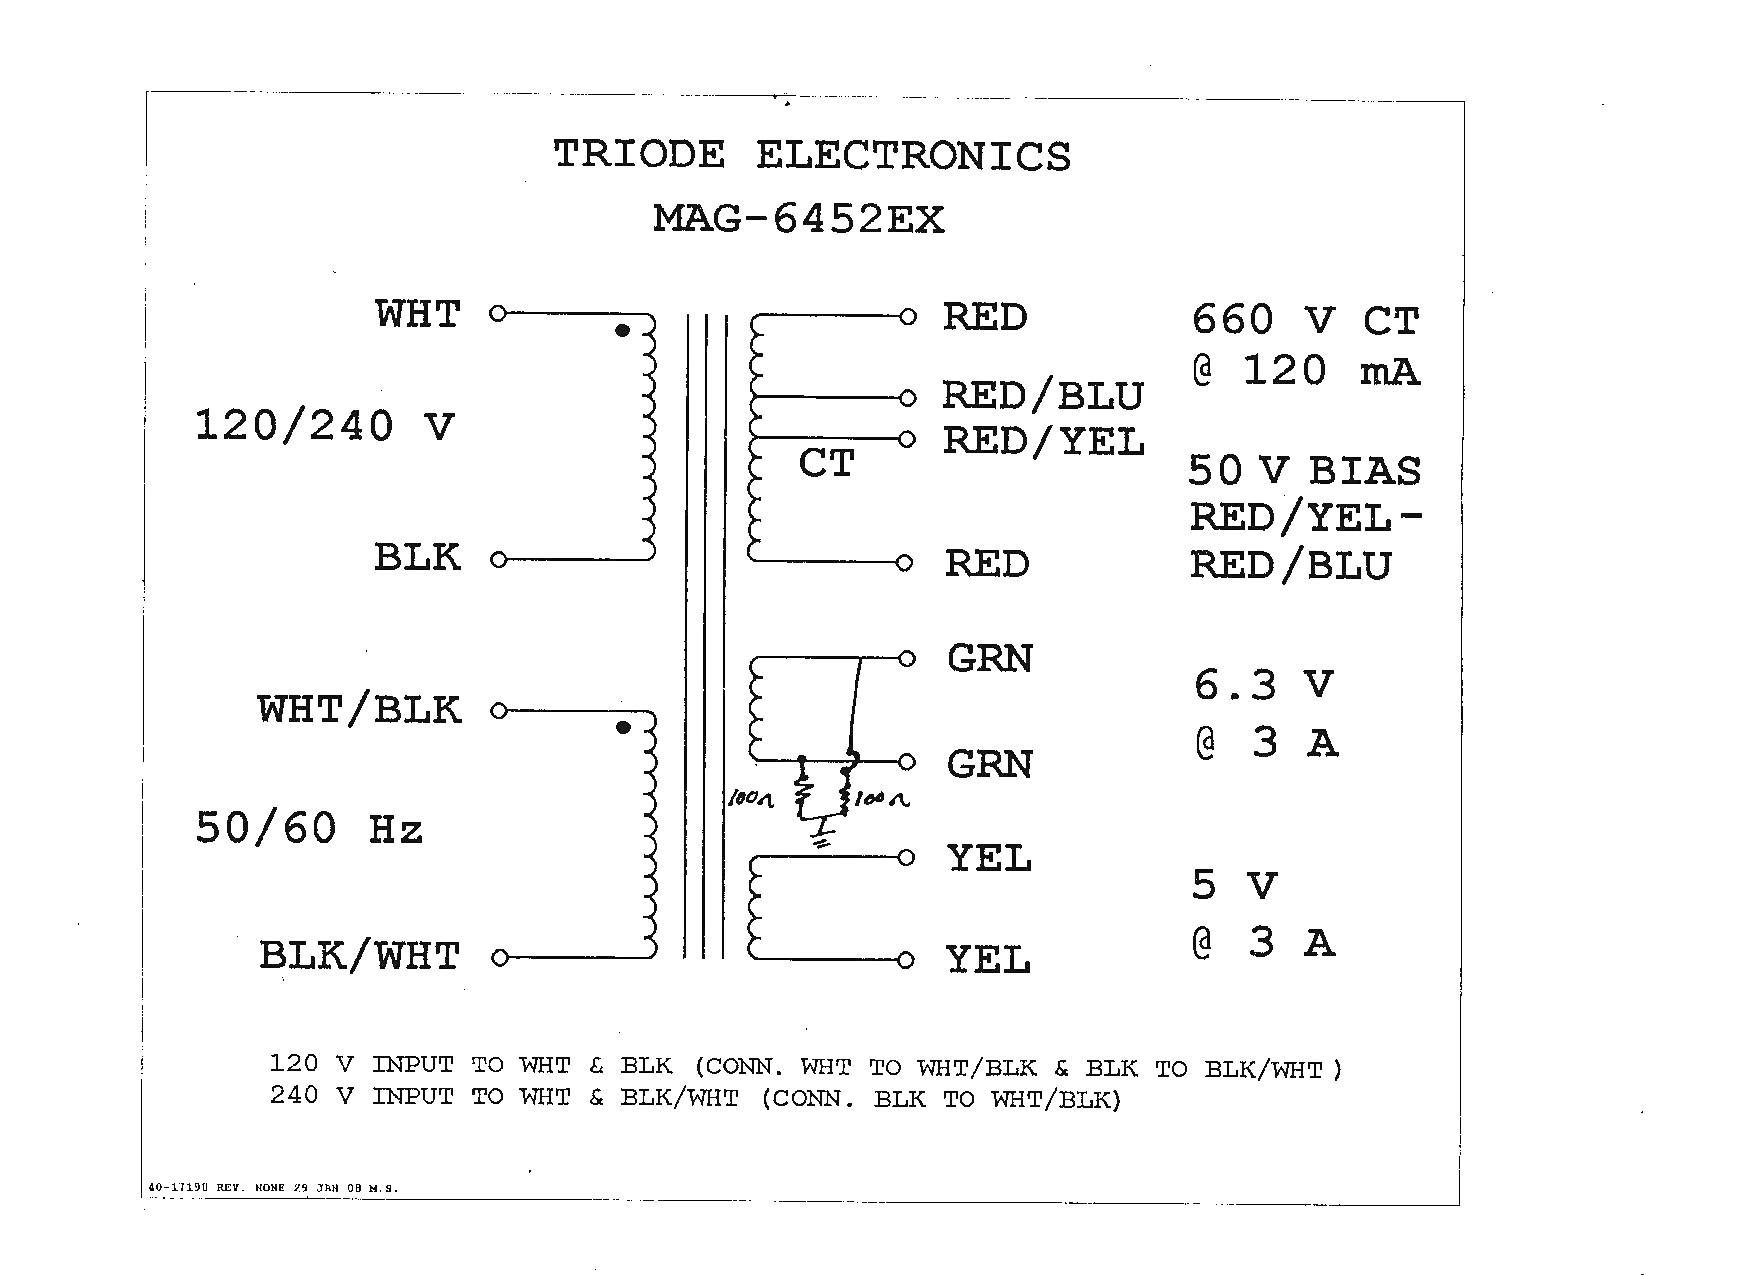 75 kva transformer wiring diagram motor rtd hvac free picture air conditioning design